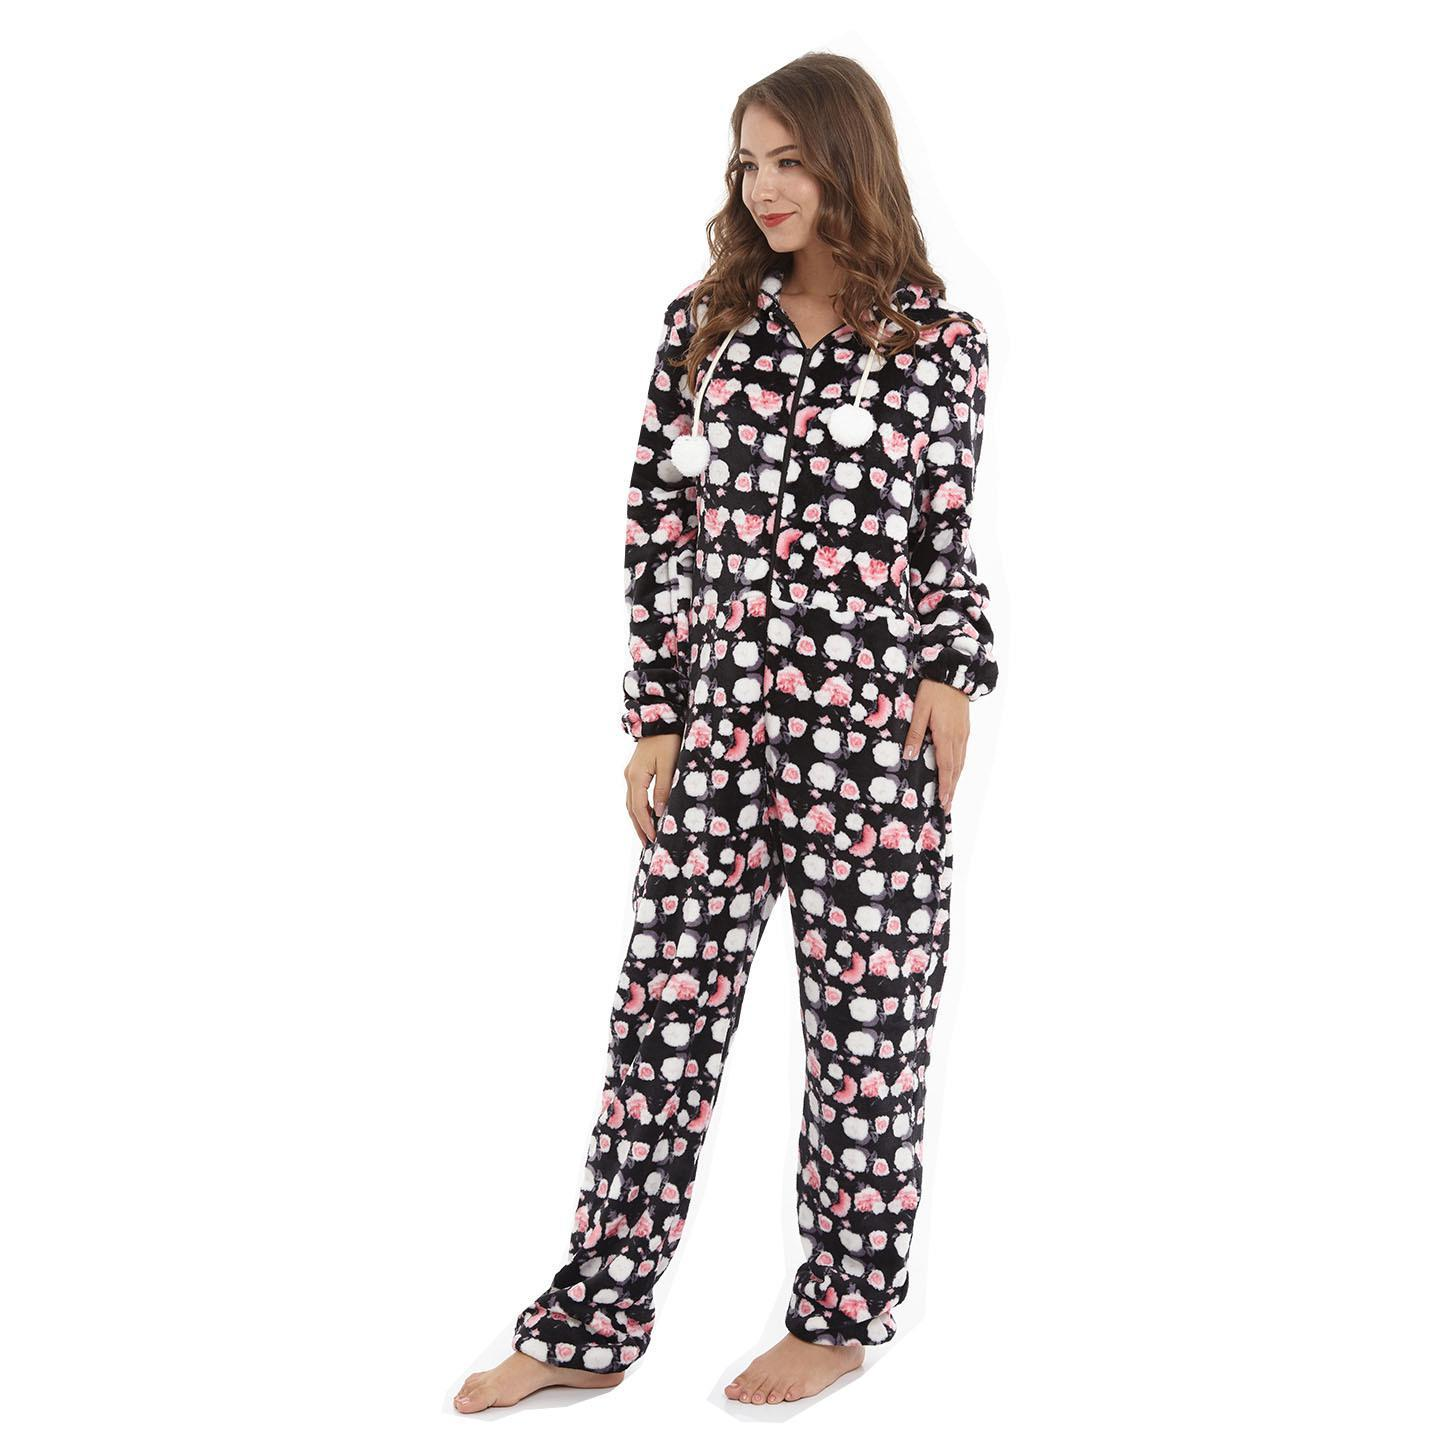 Women New Onesies Pajama Kigurumi Comfortable Flannel Keep Warm And Soft Jumpsuit Pajama Novelty Hooded Floral Homewear